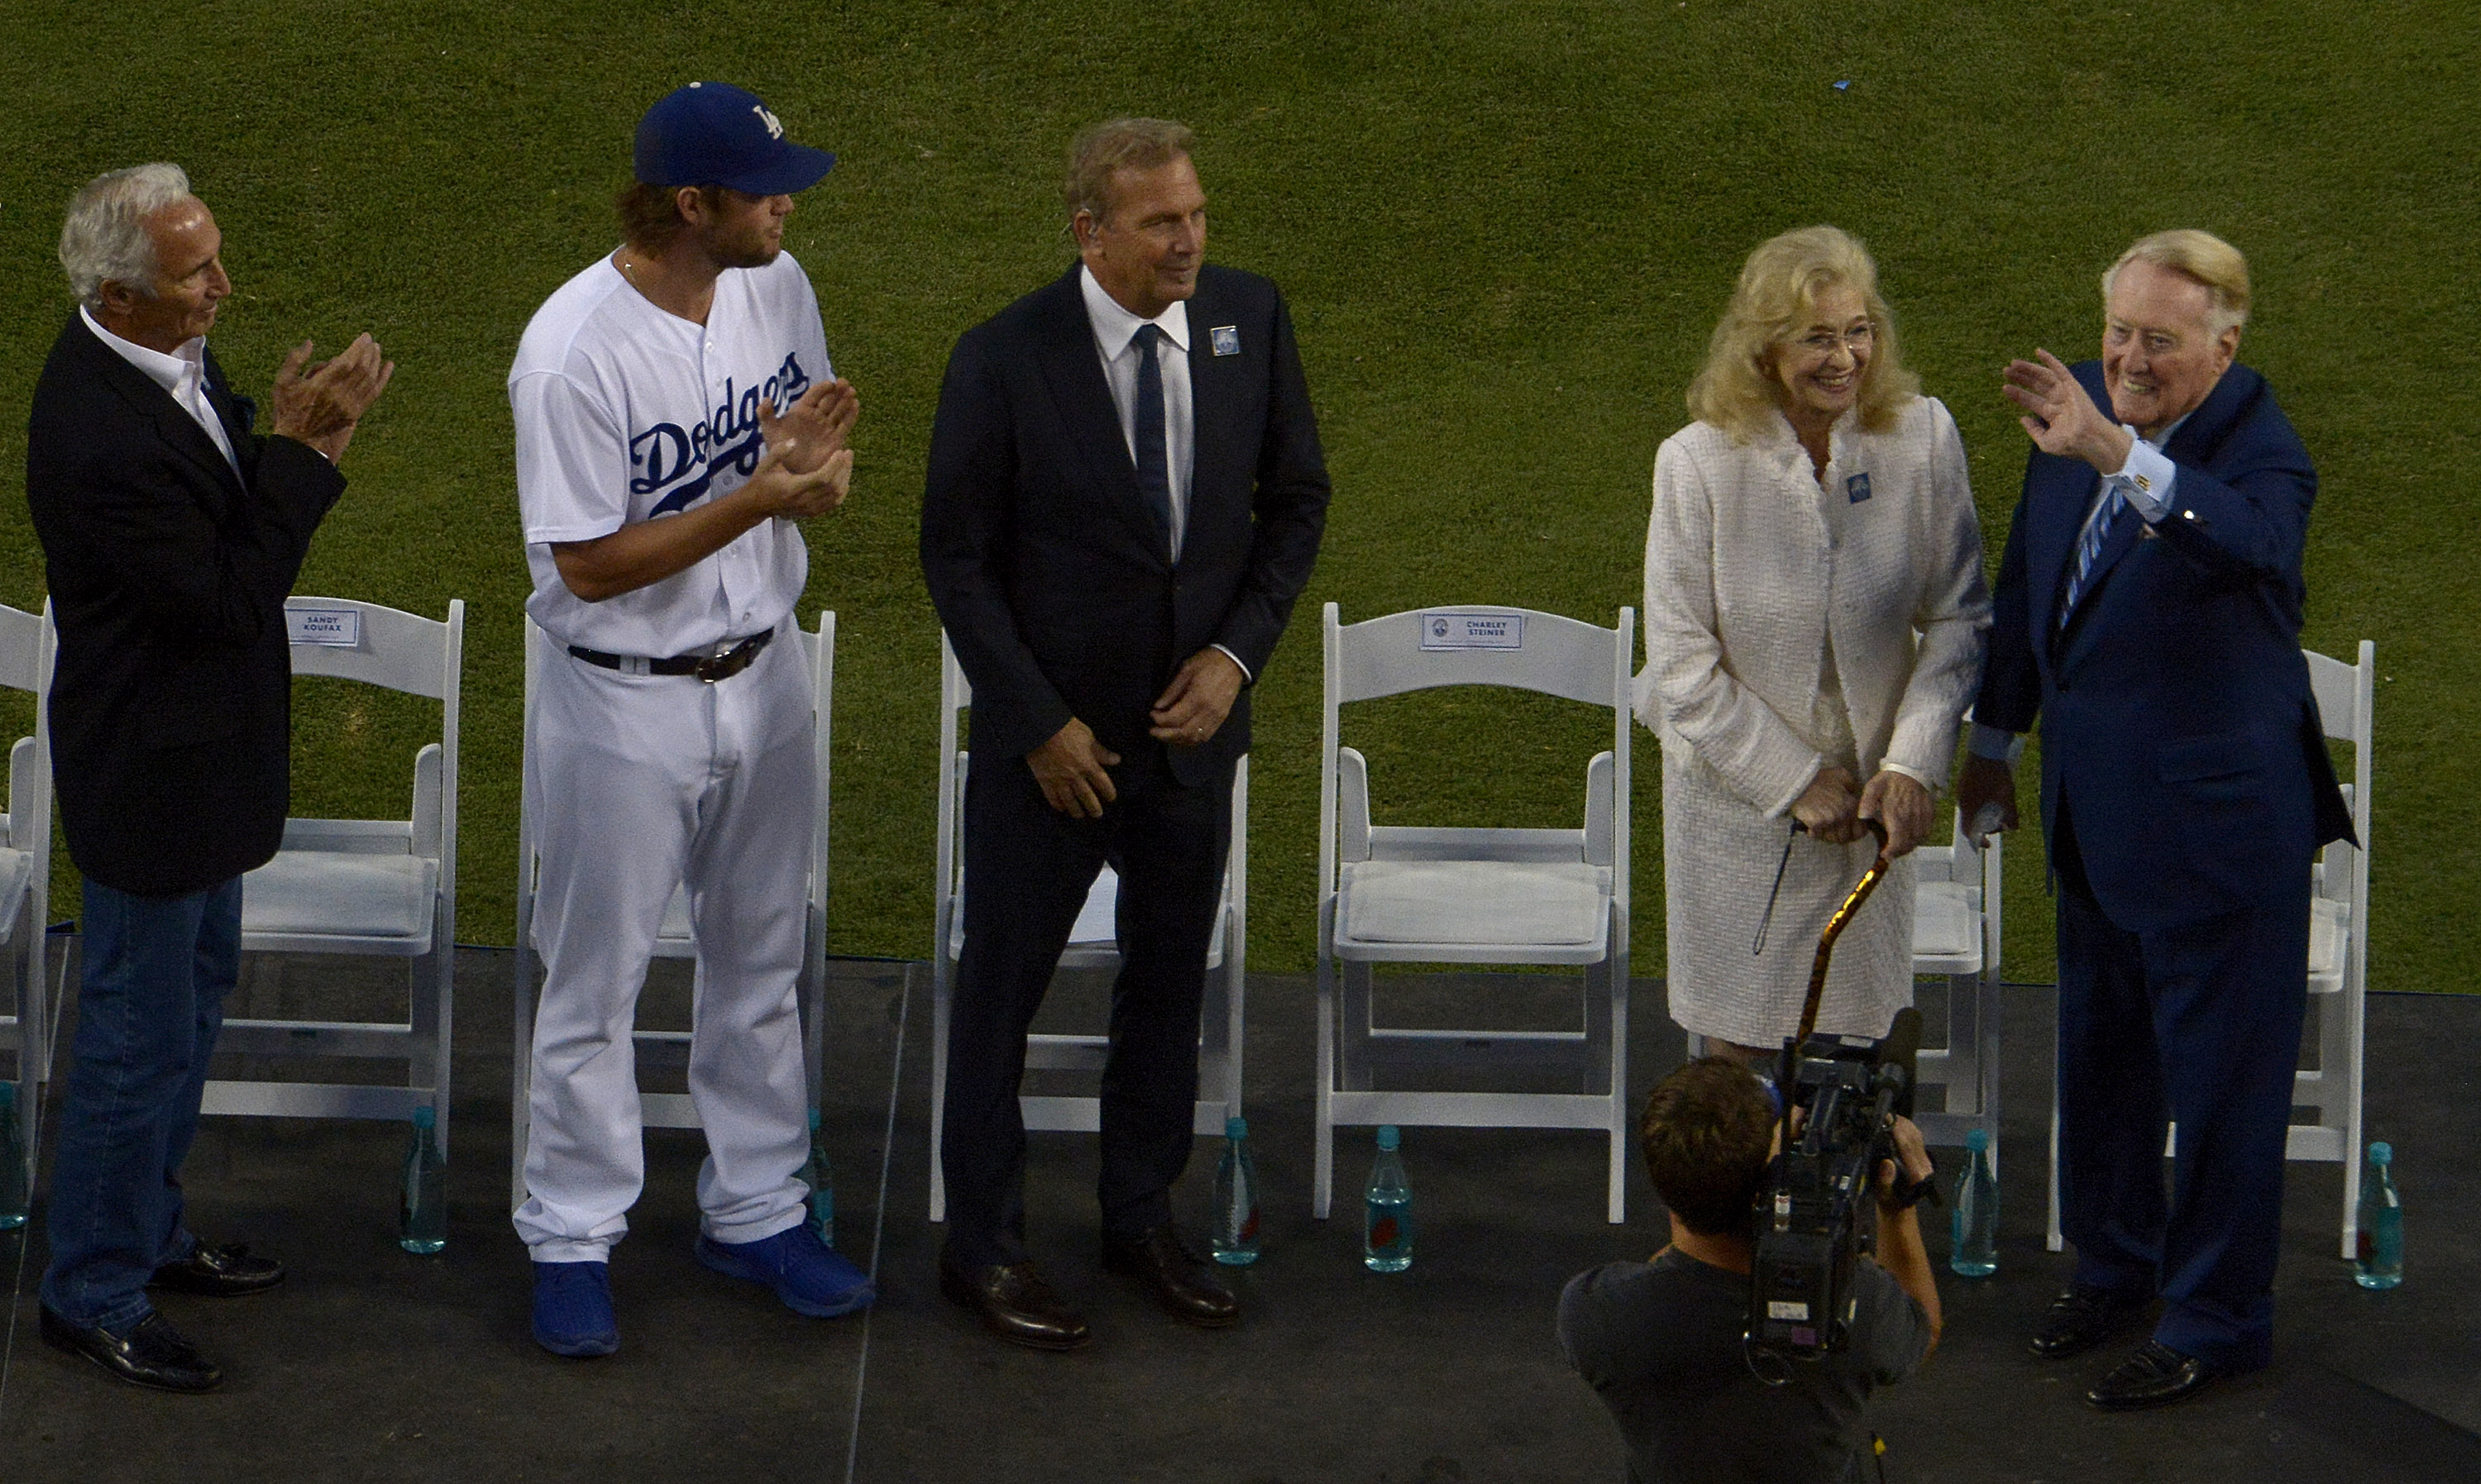 Sandi Scully wife of Hall of Fame and former Los Angeles Dodgers broadcaster Vin Scully passed away at age of 76 due to ALS.